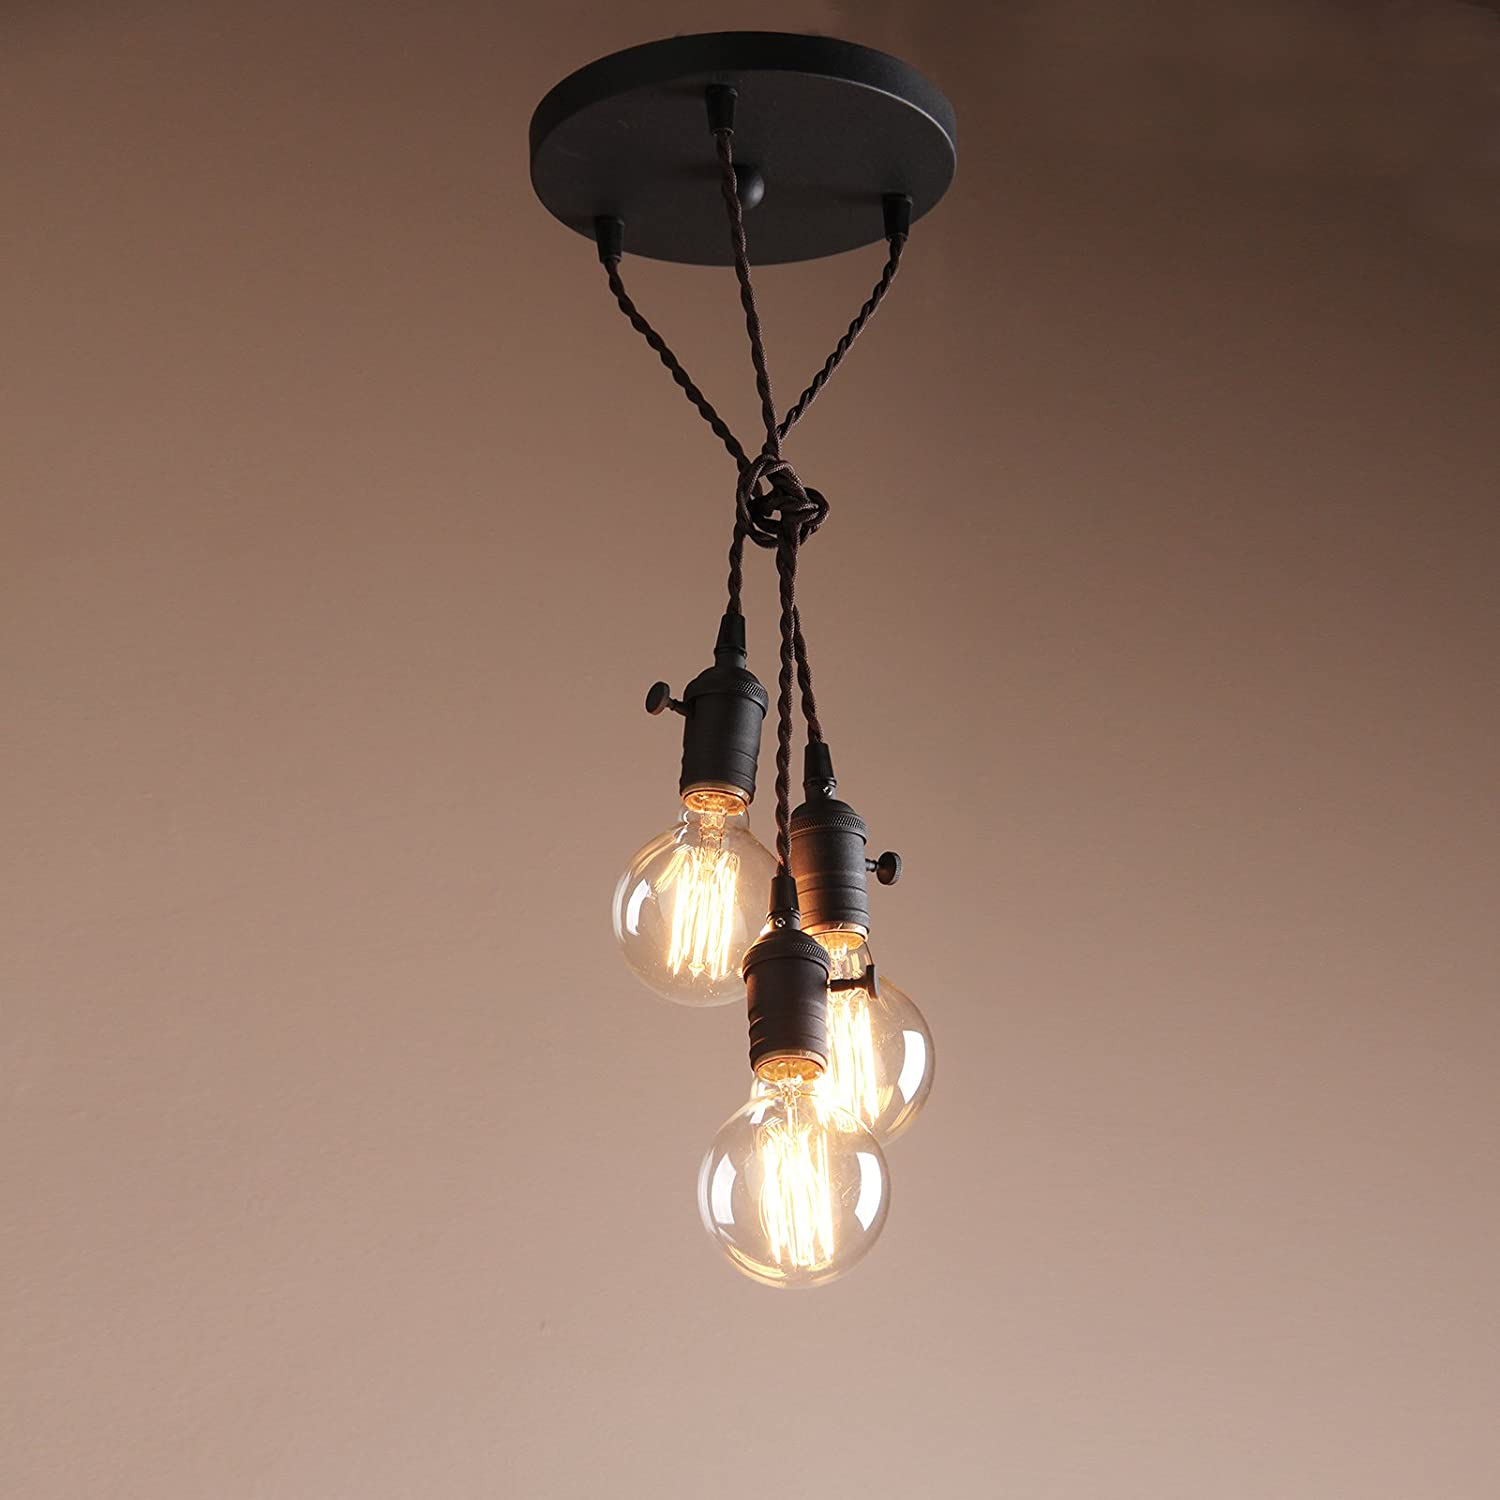 light vintage and en matte hanging with home rope fans canada black p depot in fixture lights more industrial the modern lighting pendant ceiling categories